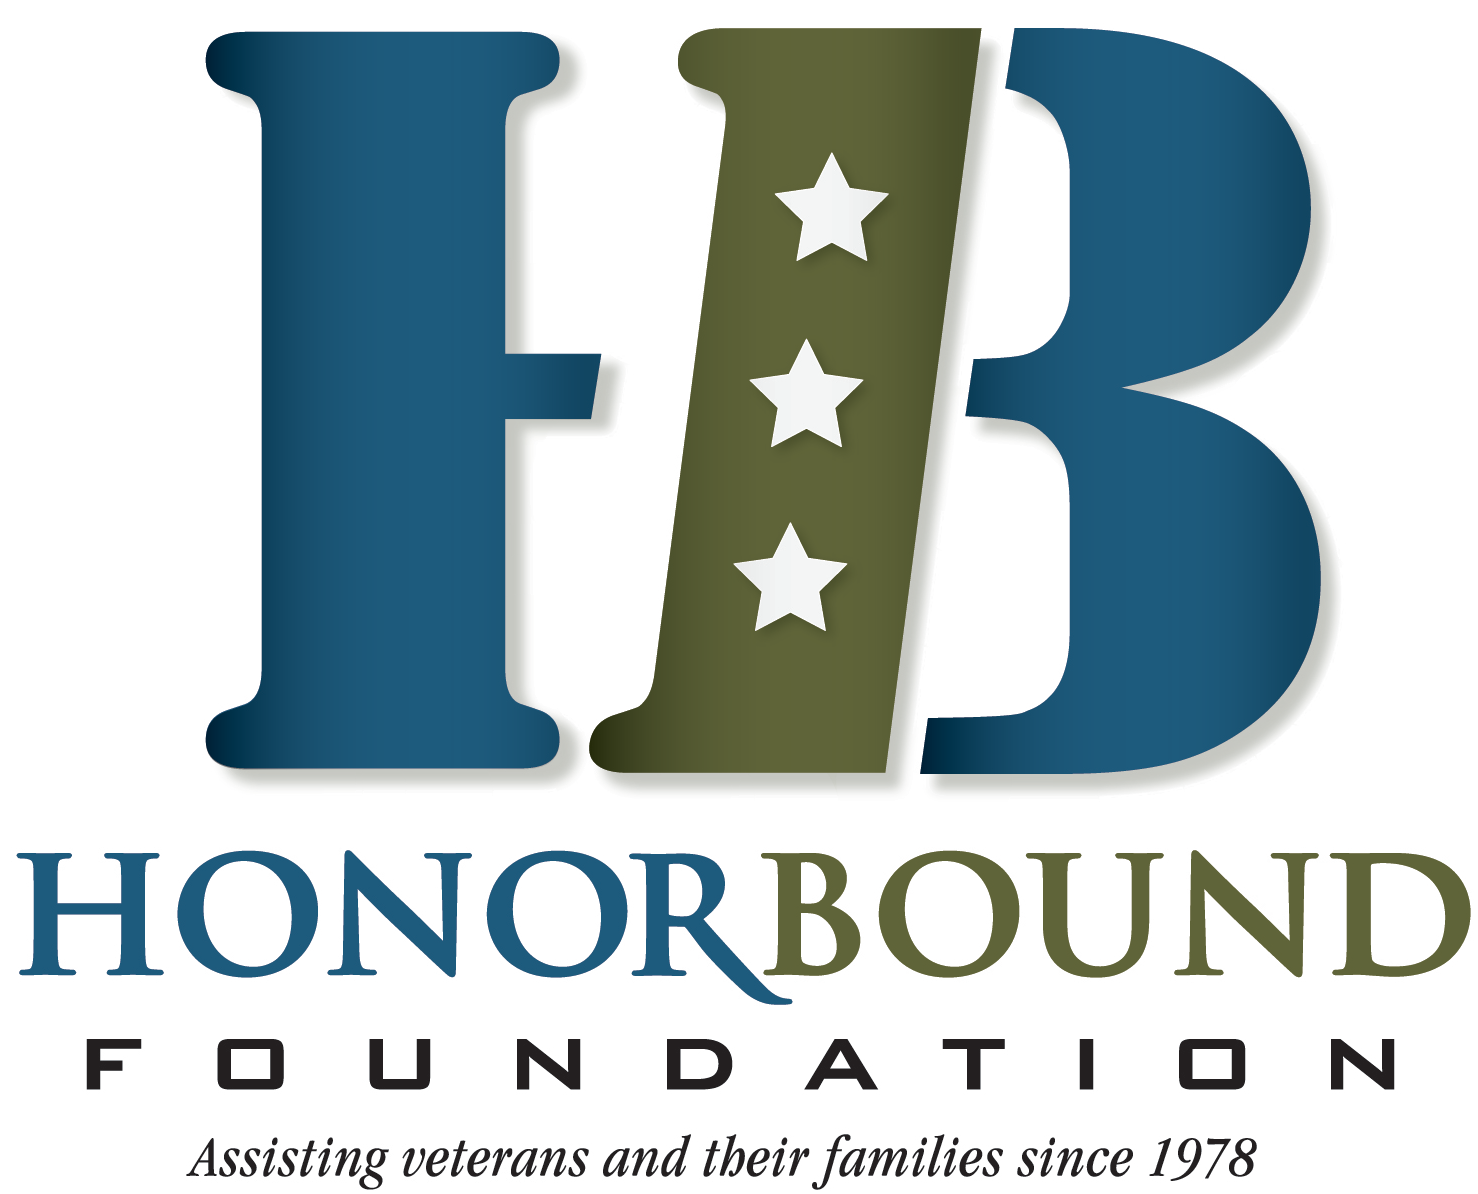 HonorBound Foundation on DonatecarUSA.com